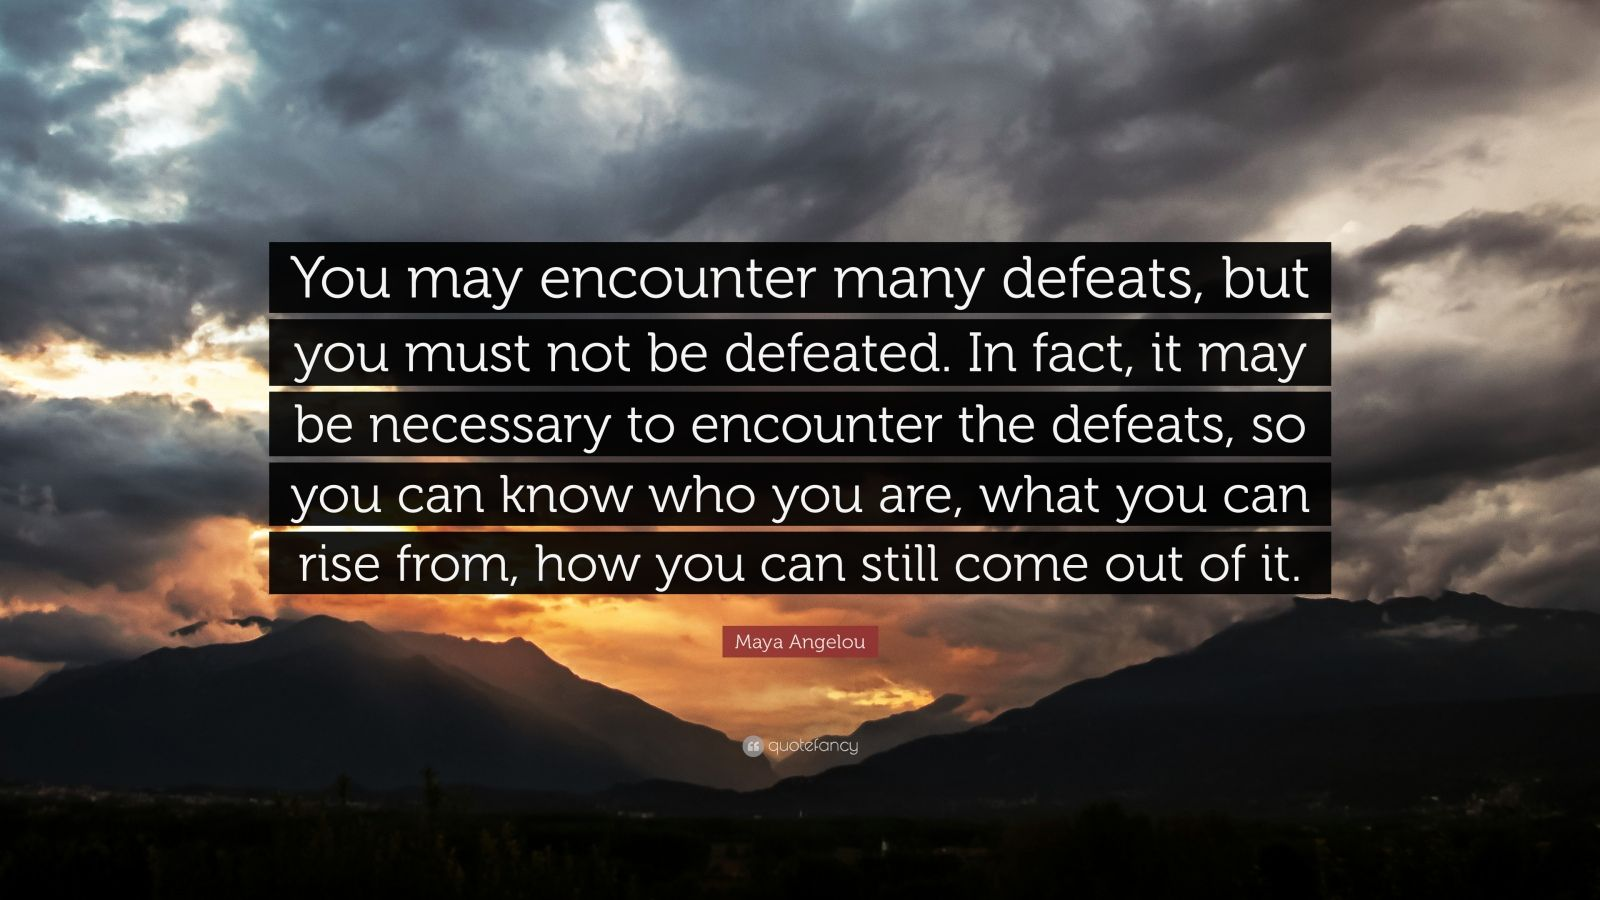 "Maya Angelou Quote: ""You may encounter many defeats, but you must not be defeated. In fact, it may be necessary to encounter the defeats, so you can know who you are, what you can rise from, how you can still come out of it."""